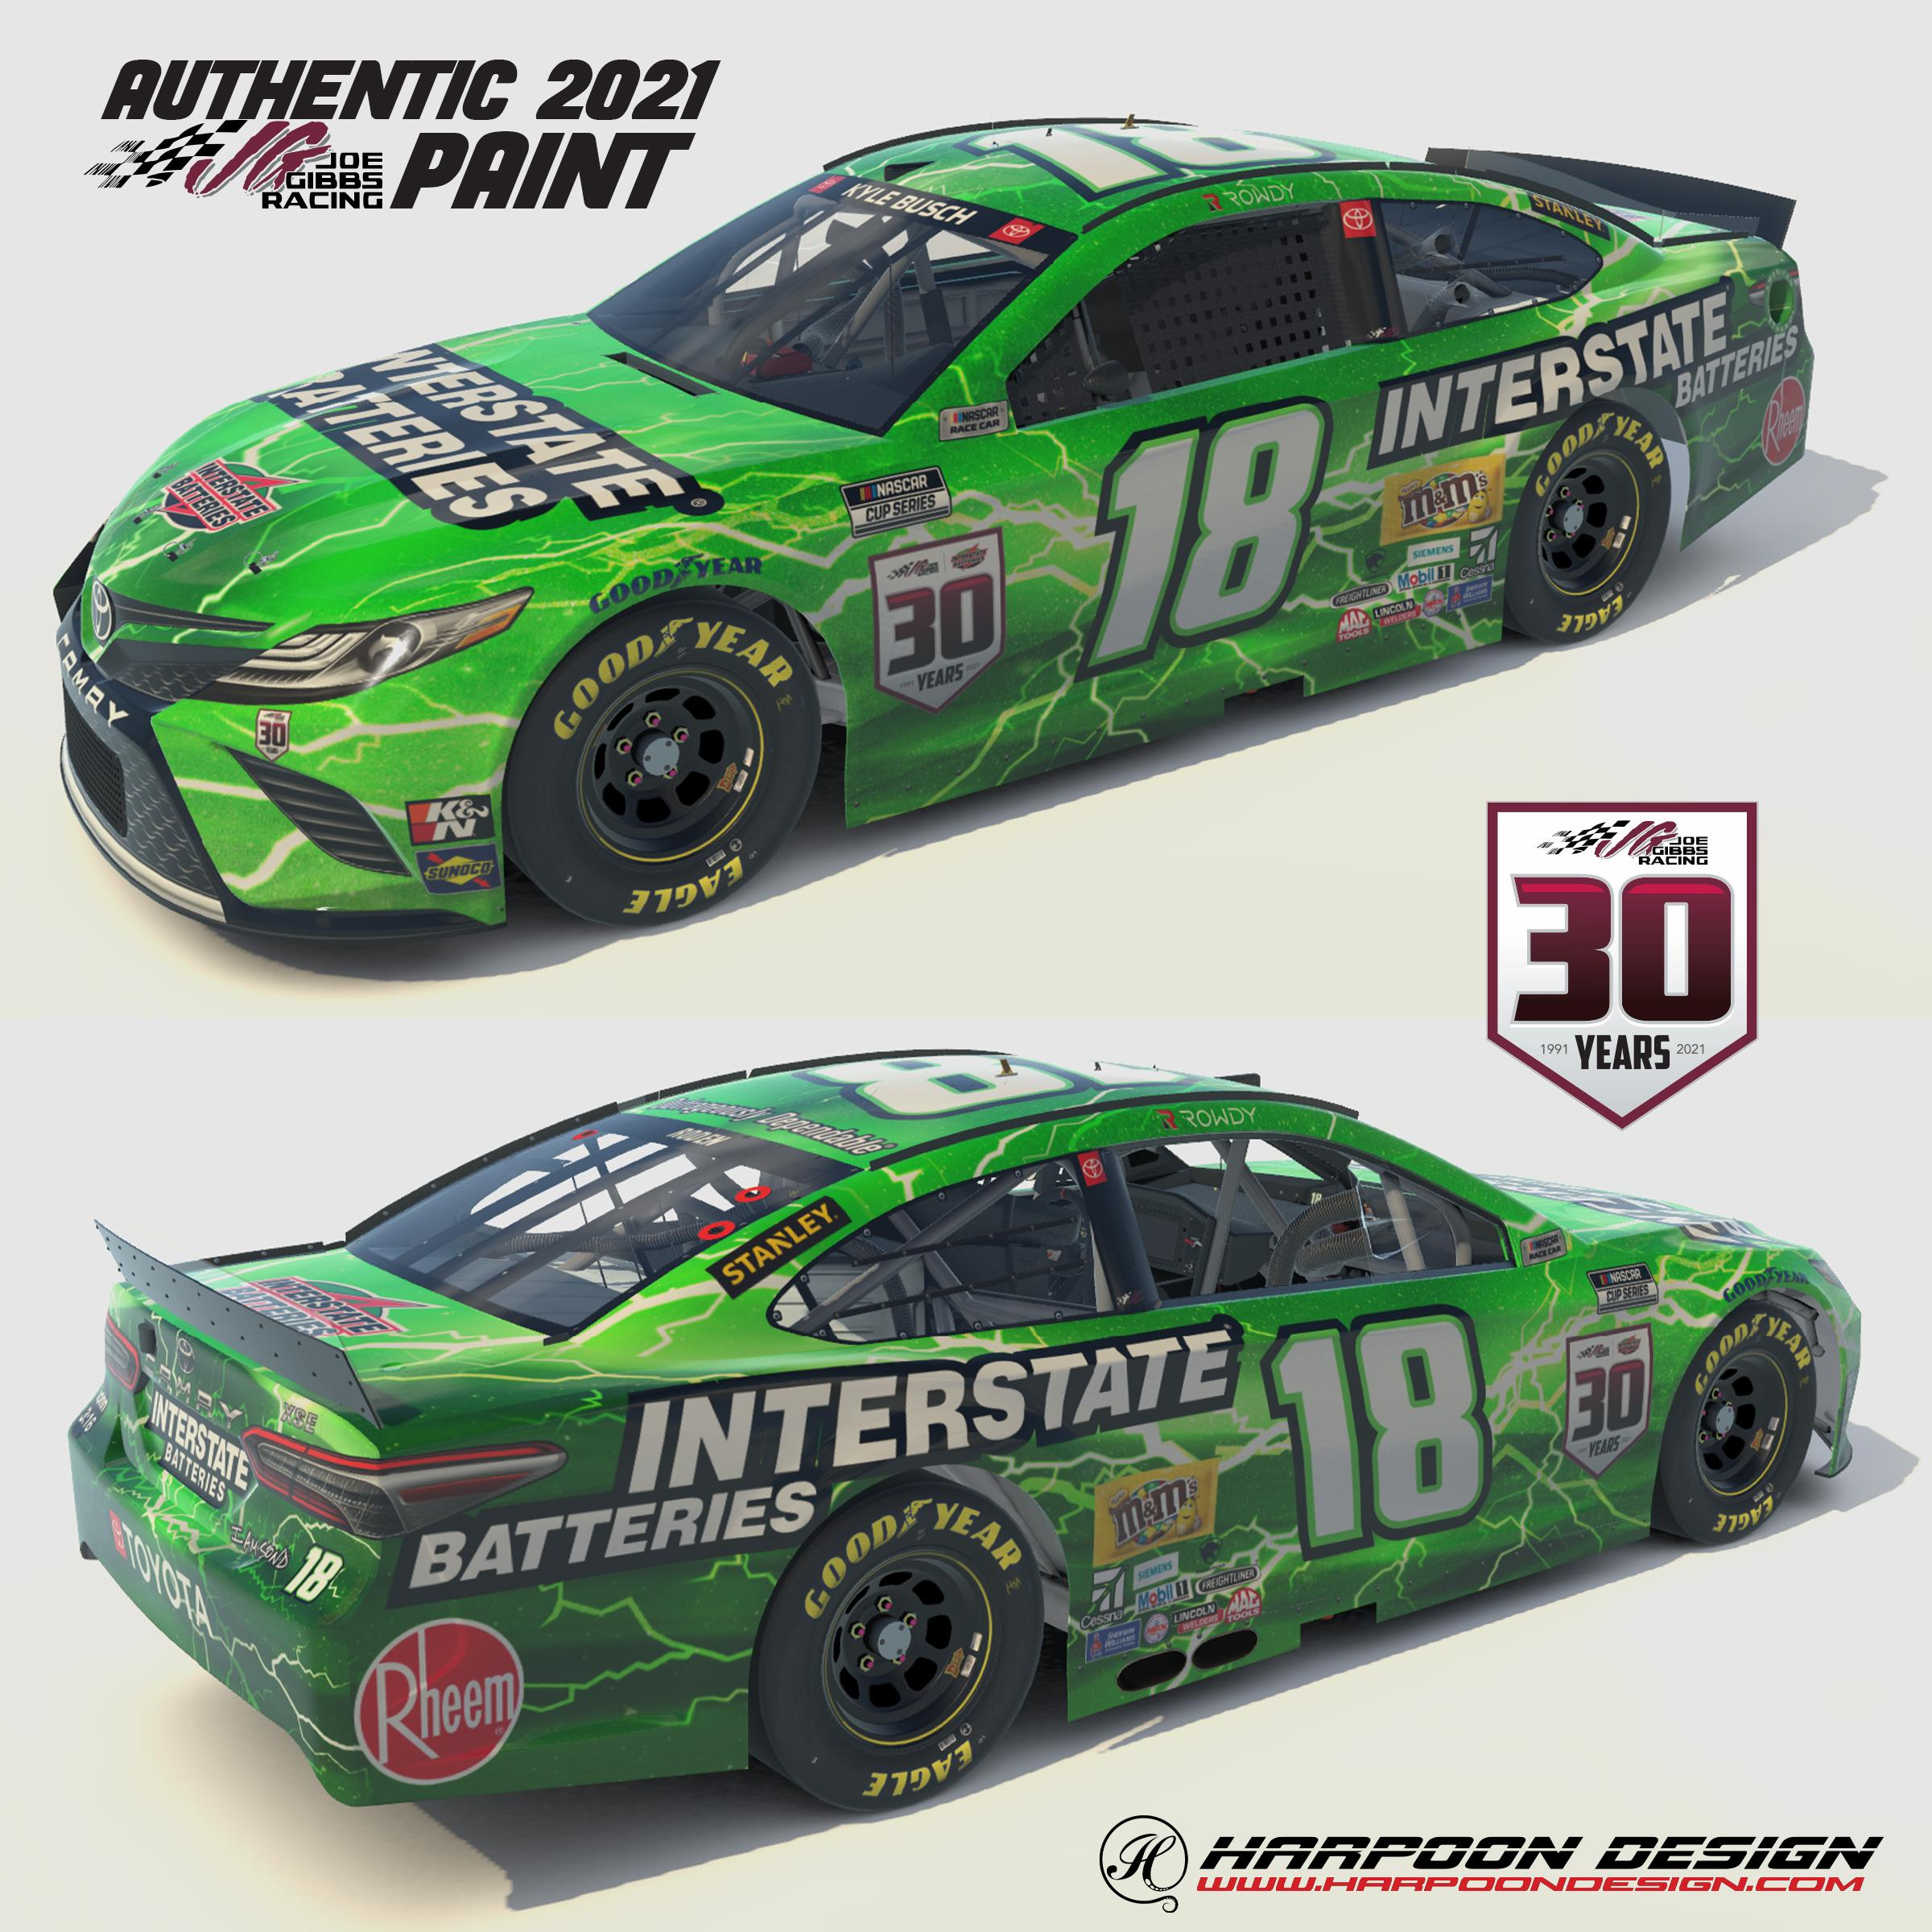 Preview of 2021 Kyle Busch Interstate Camry by Brantley Roden